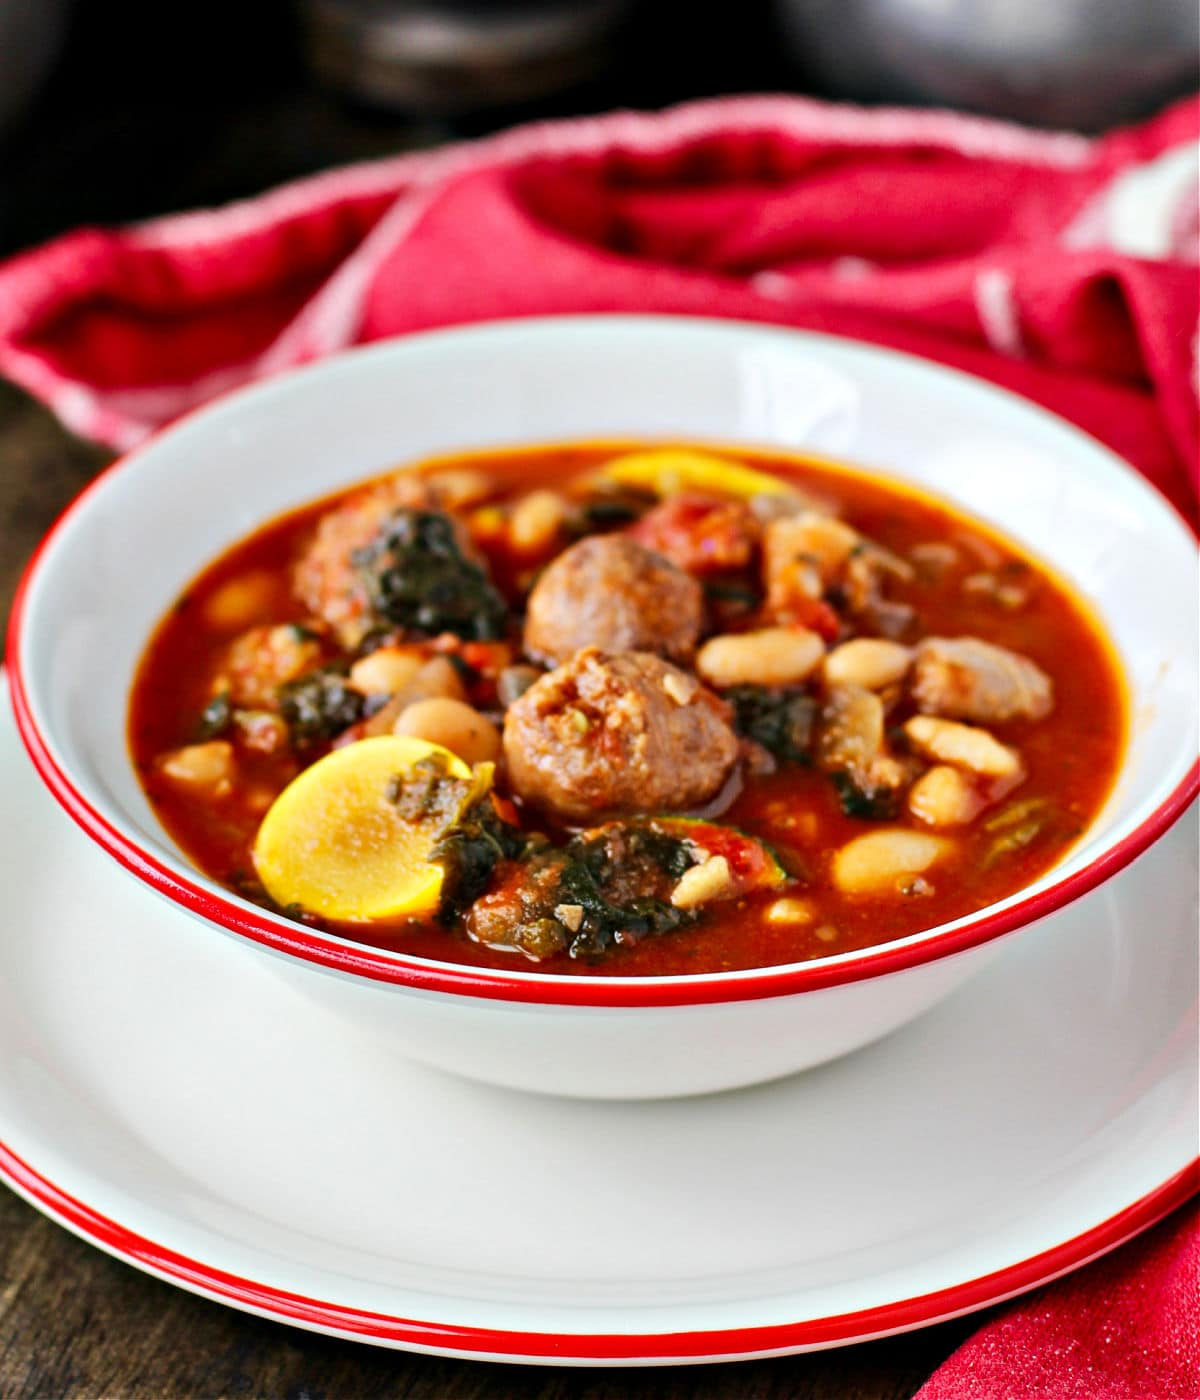 Sausage, Vegetable, and Bean Soup in a bowl with a red rim.